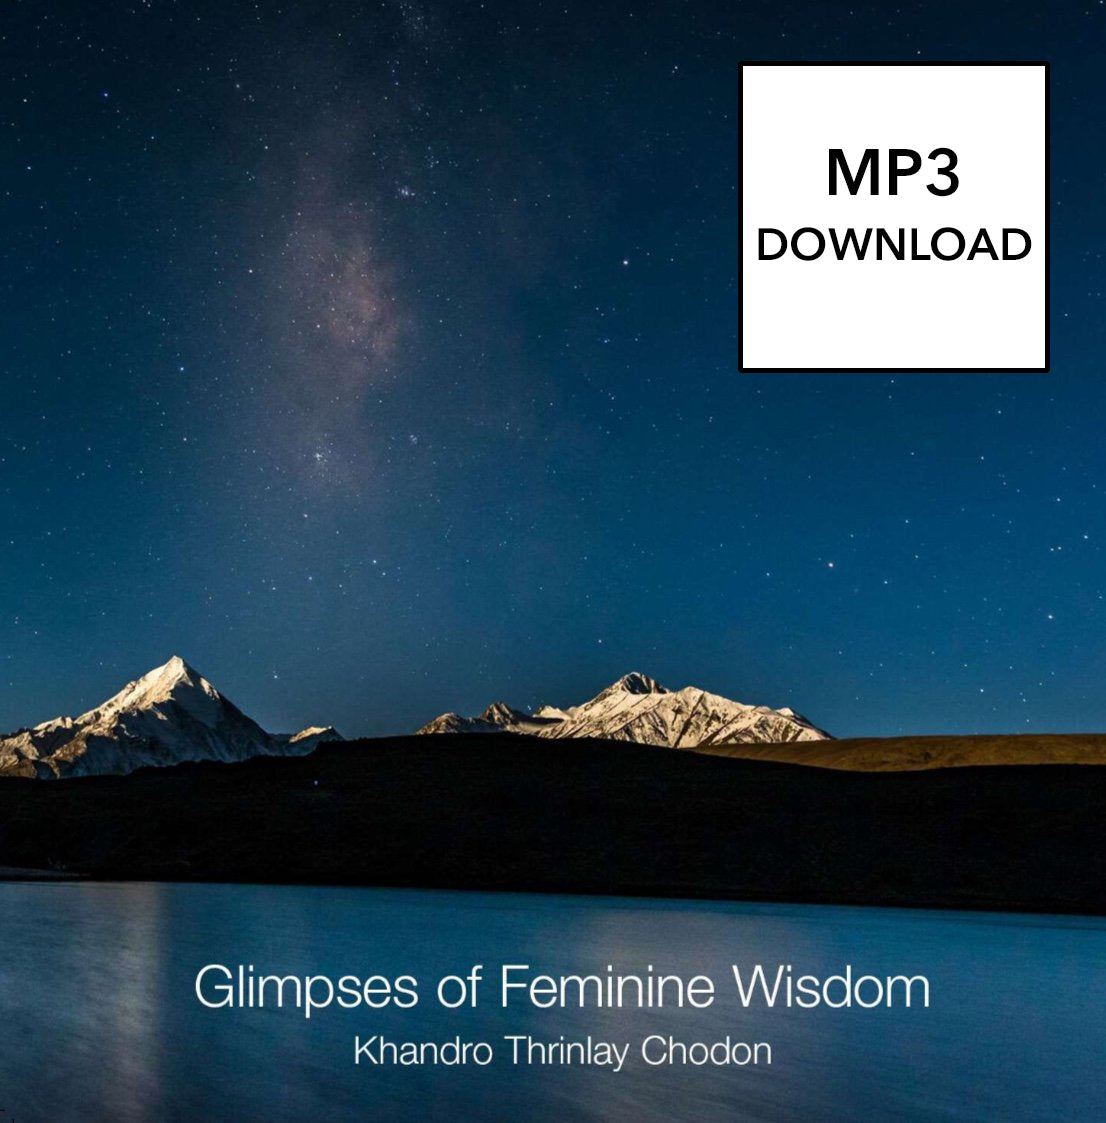 Glimpses of Feminine Wisdom - MP3 Download